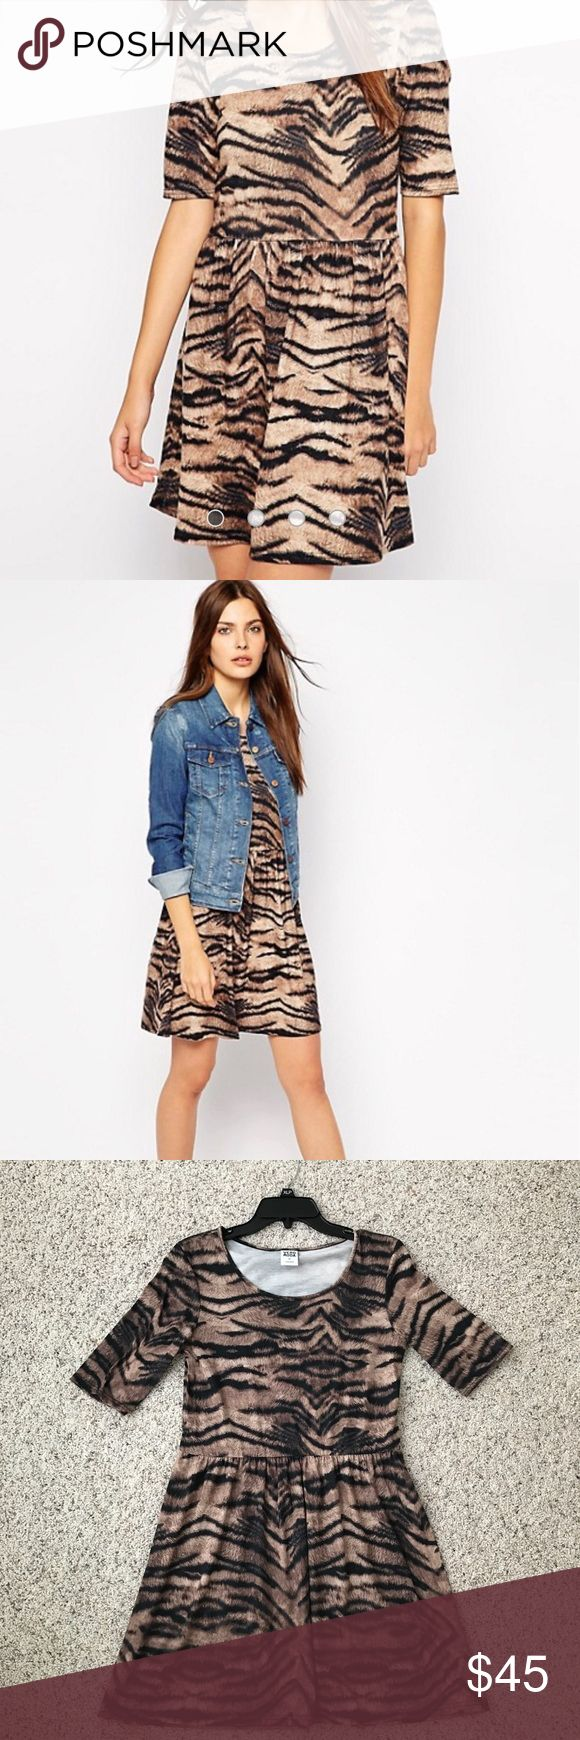 Vero Moda Tiger Print Dress Like new item (worn once). Can fit a size small as well since it is a loose fitting dress. Perfect for LSU game days  Vero Moda Dresses Mini